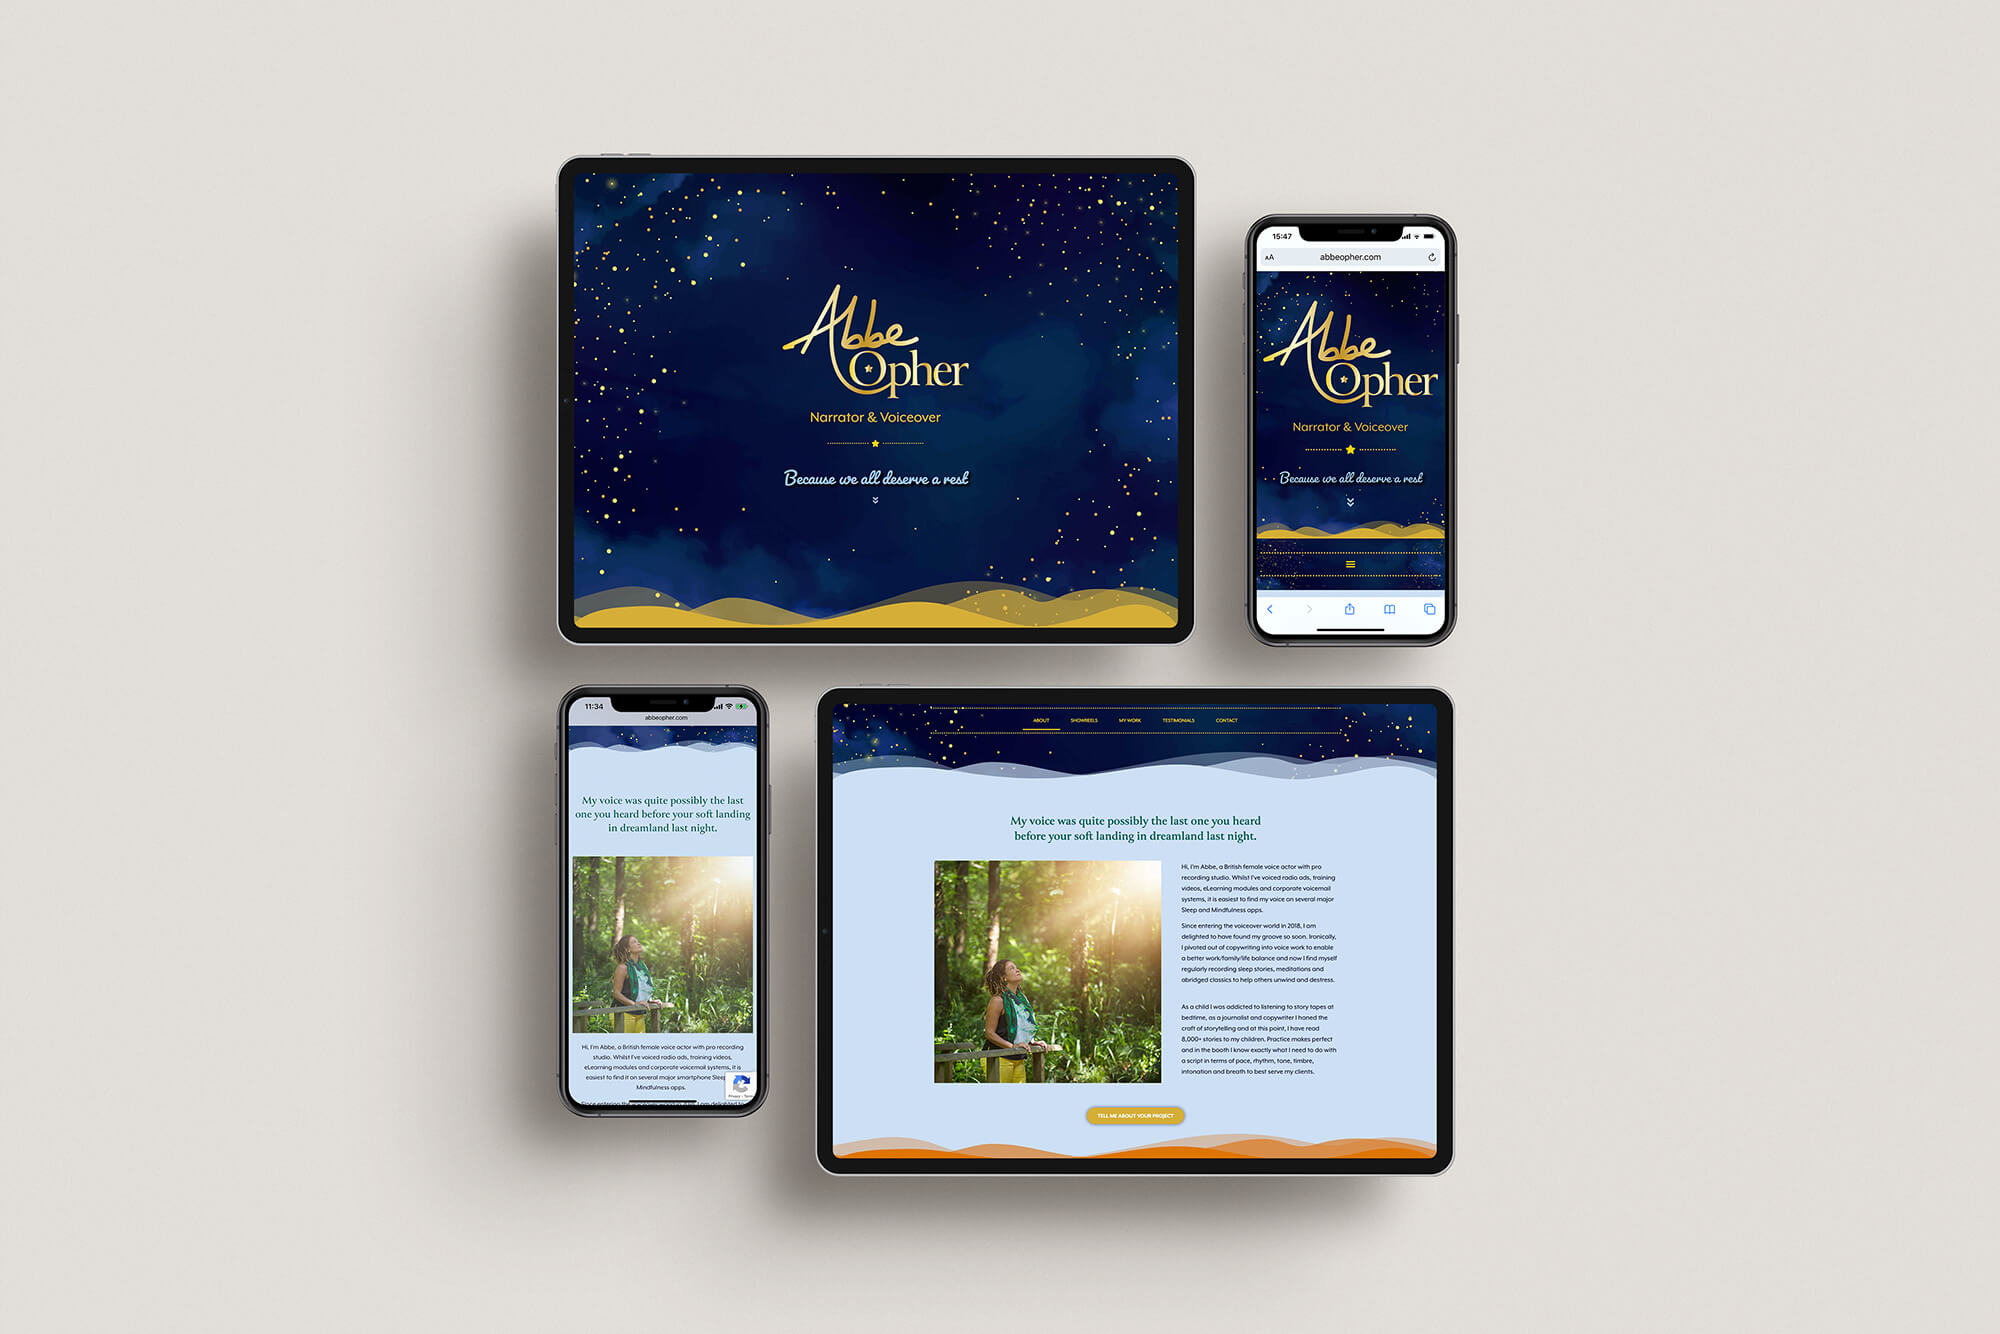 Abbe Opher voiceover website responsive design.